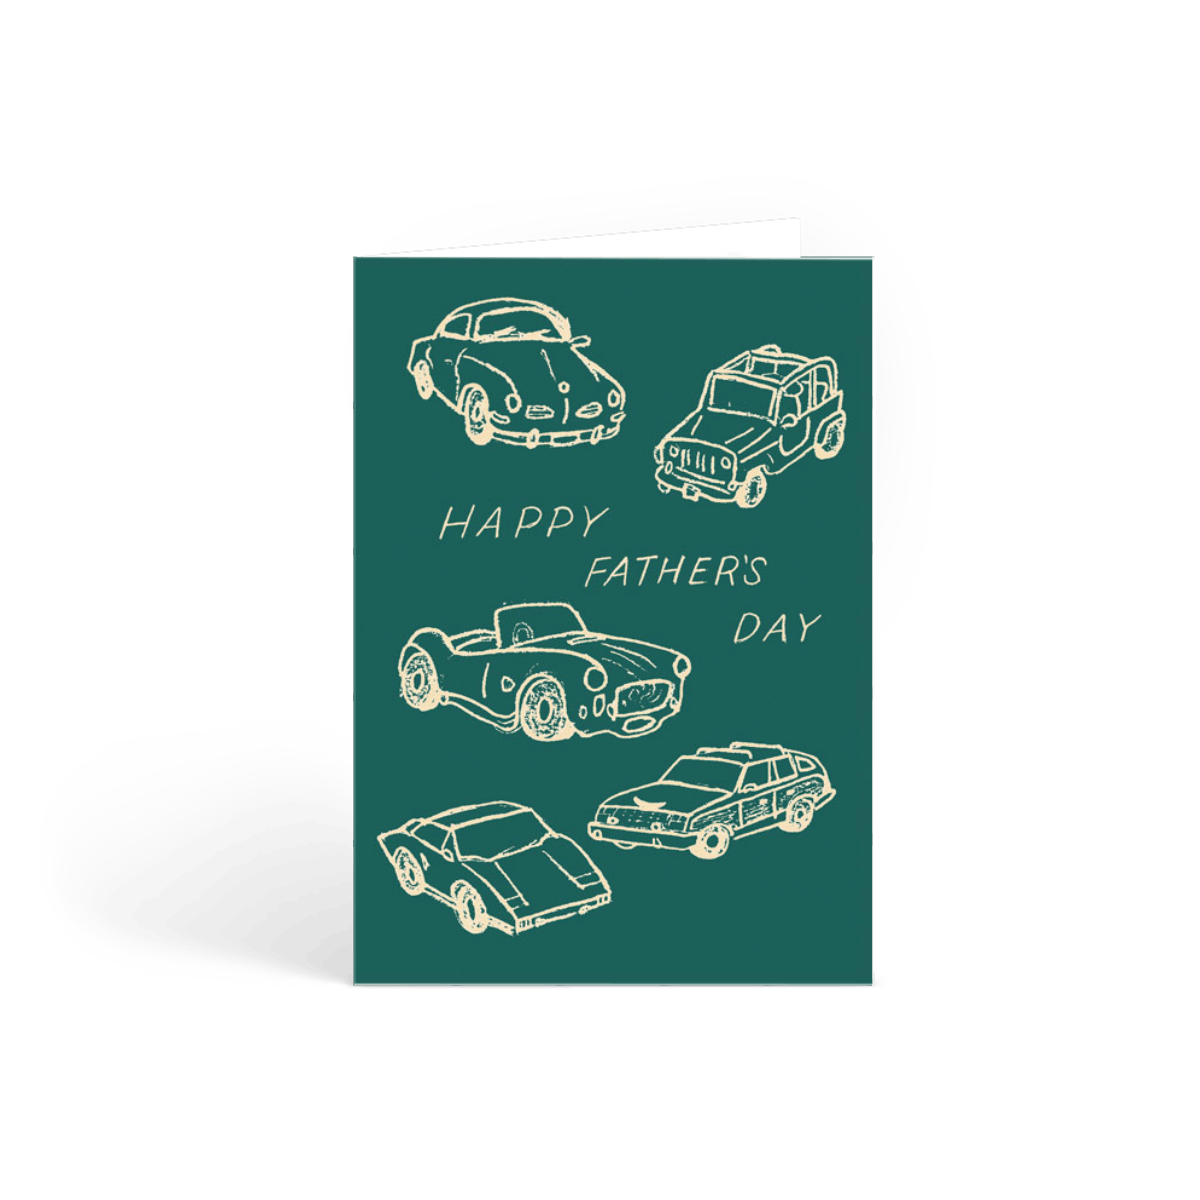 Https%3a%2f%2fwww.papier.com%2fproduct image%2f16832%2f2%2ffather s day cars 4428 front 1485254724.png?ixlib=rb 1.1